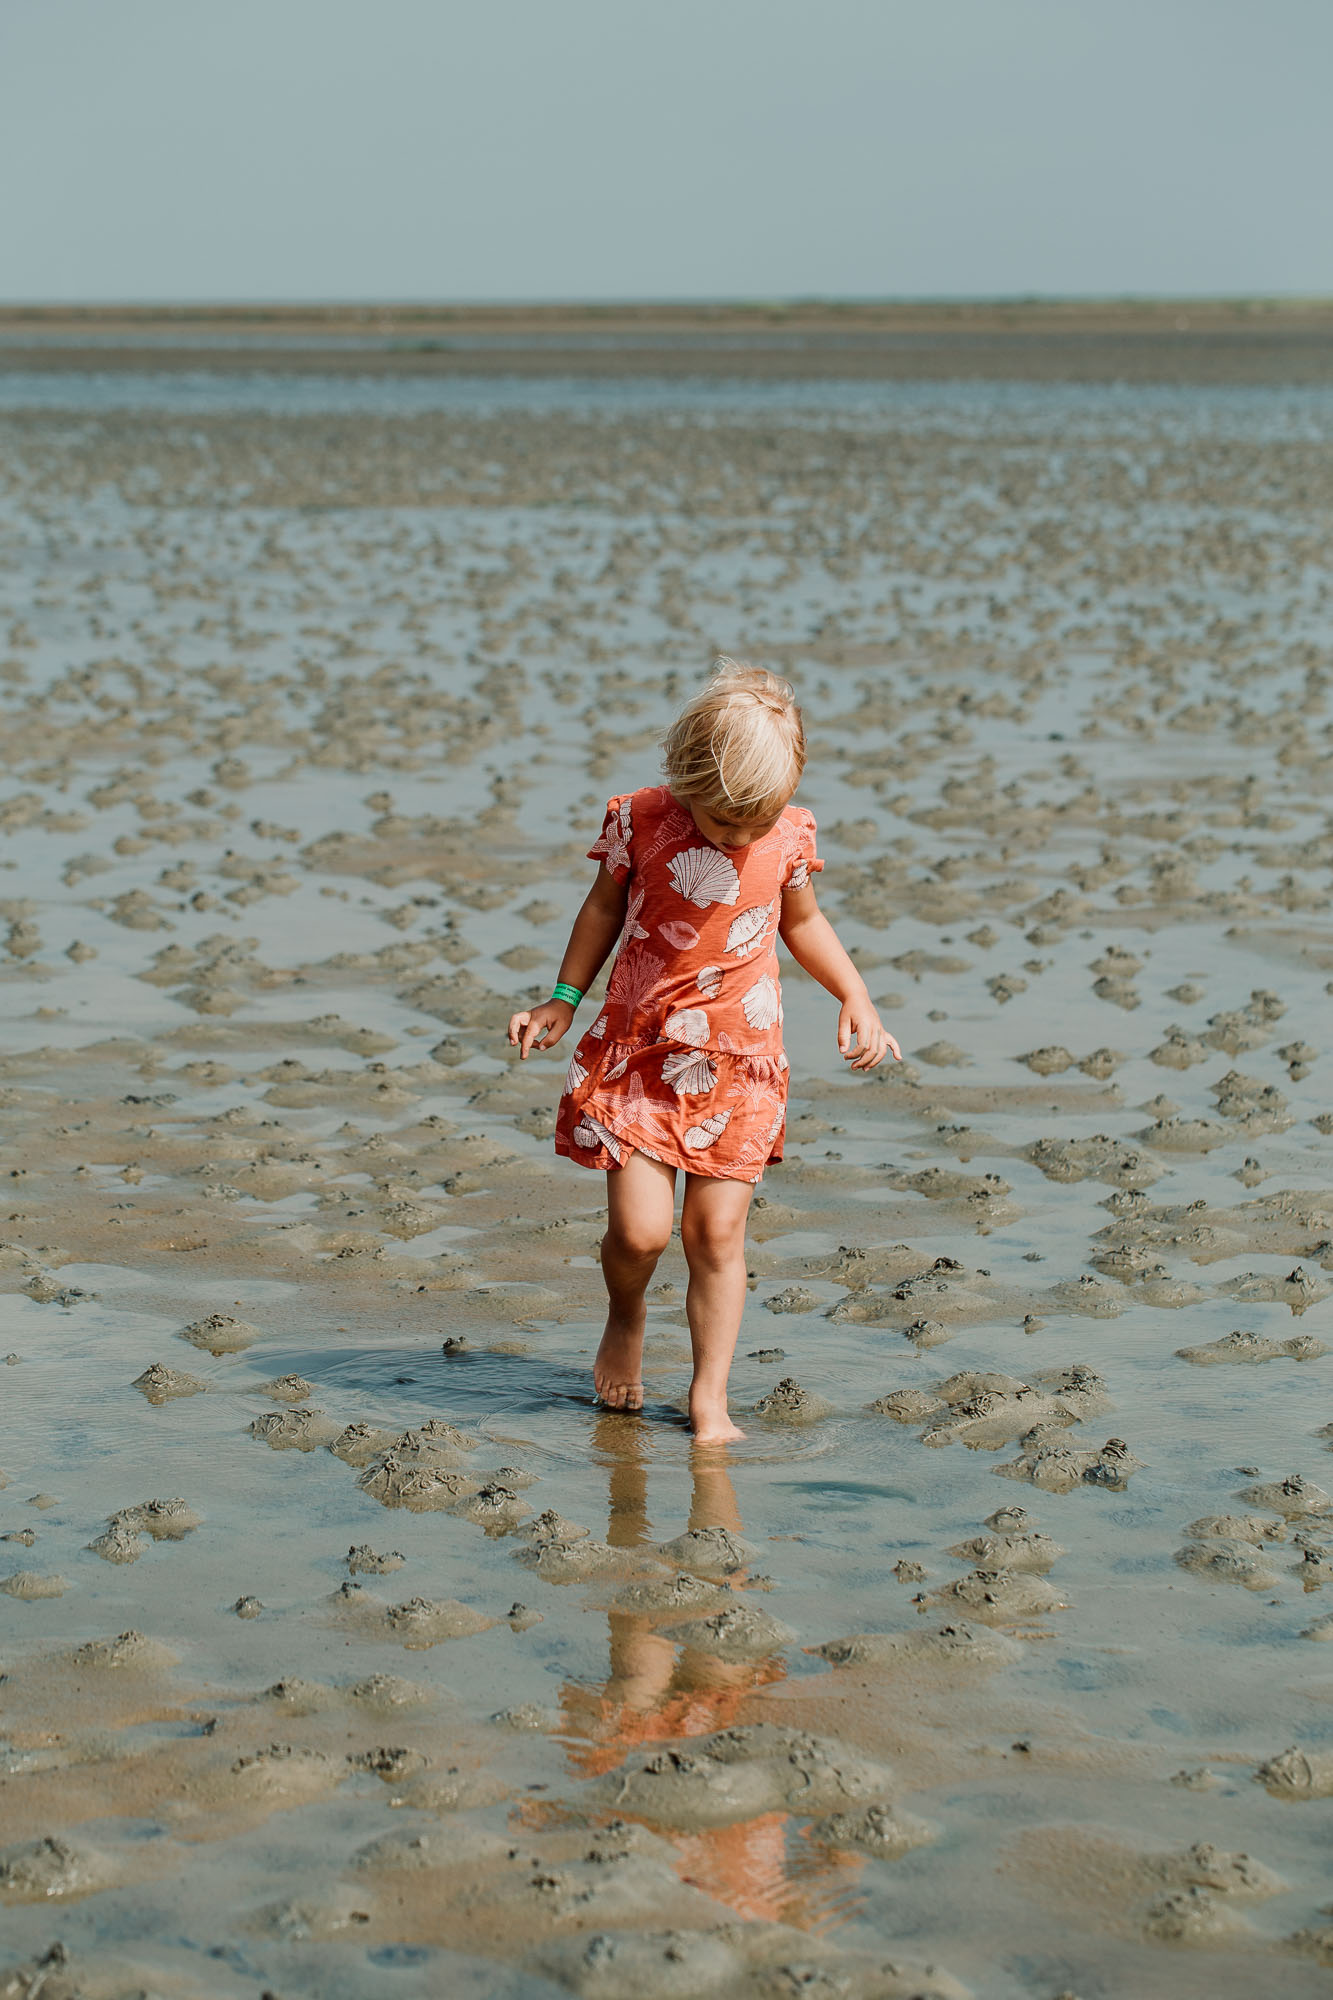 Edith on the beach.  (ID: A child in an orange dress stands on a sandy beach with only a little water on)